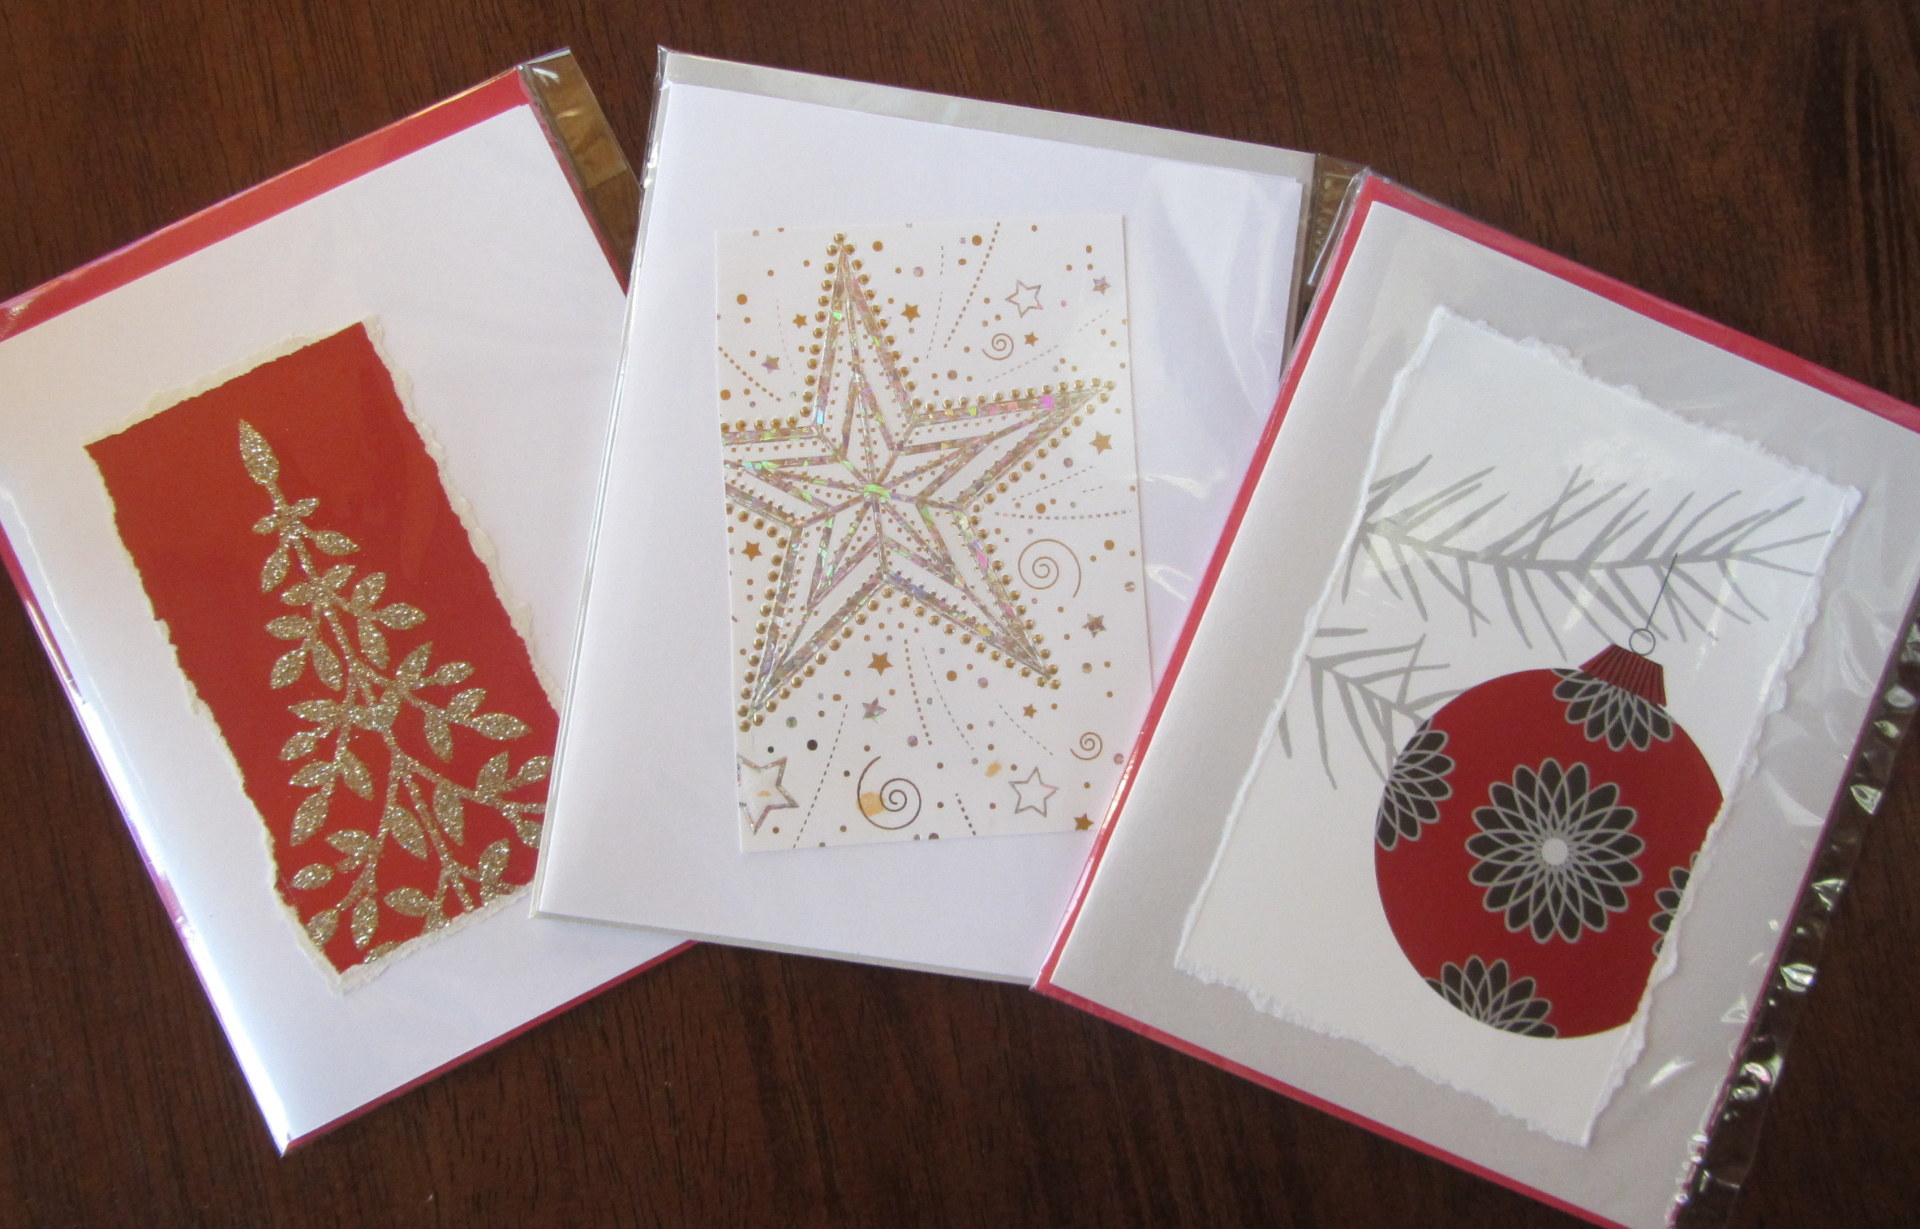 Recycled holiday cards